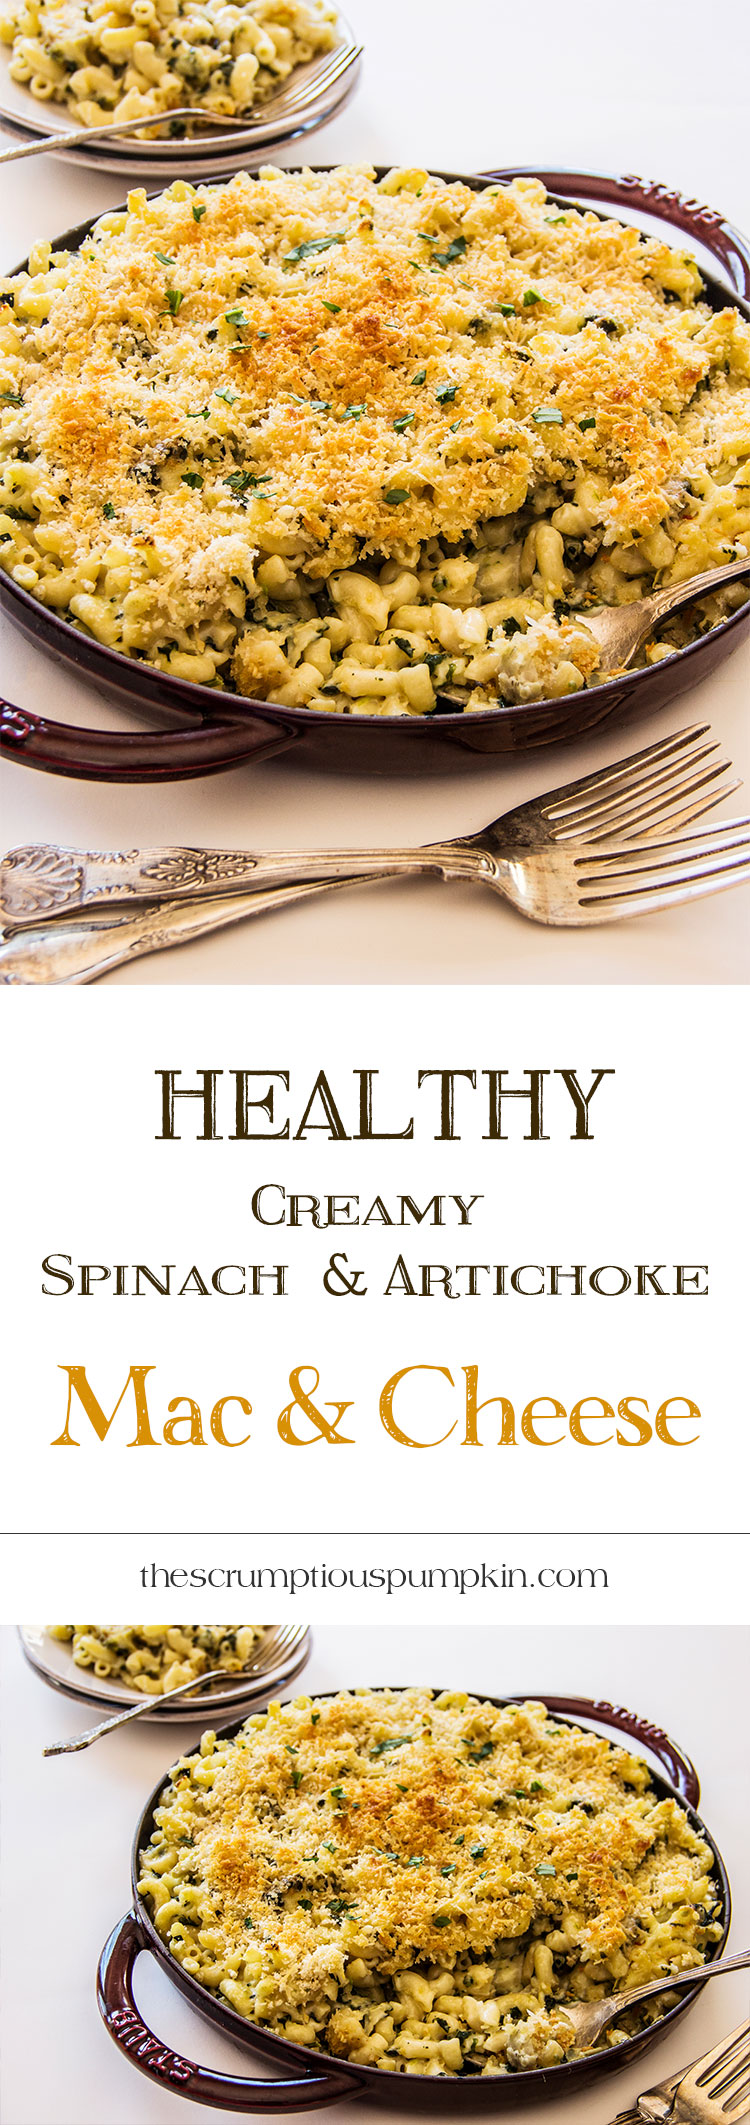 Healthy-Creamy-Spinach-and-Artichoke-Mac-and-Cheese